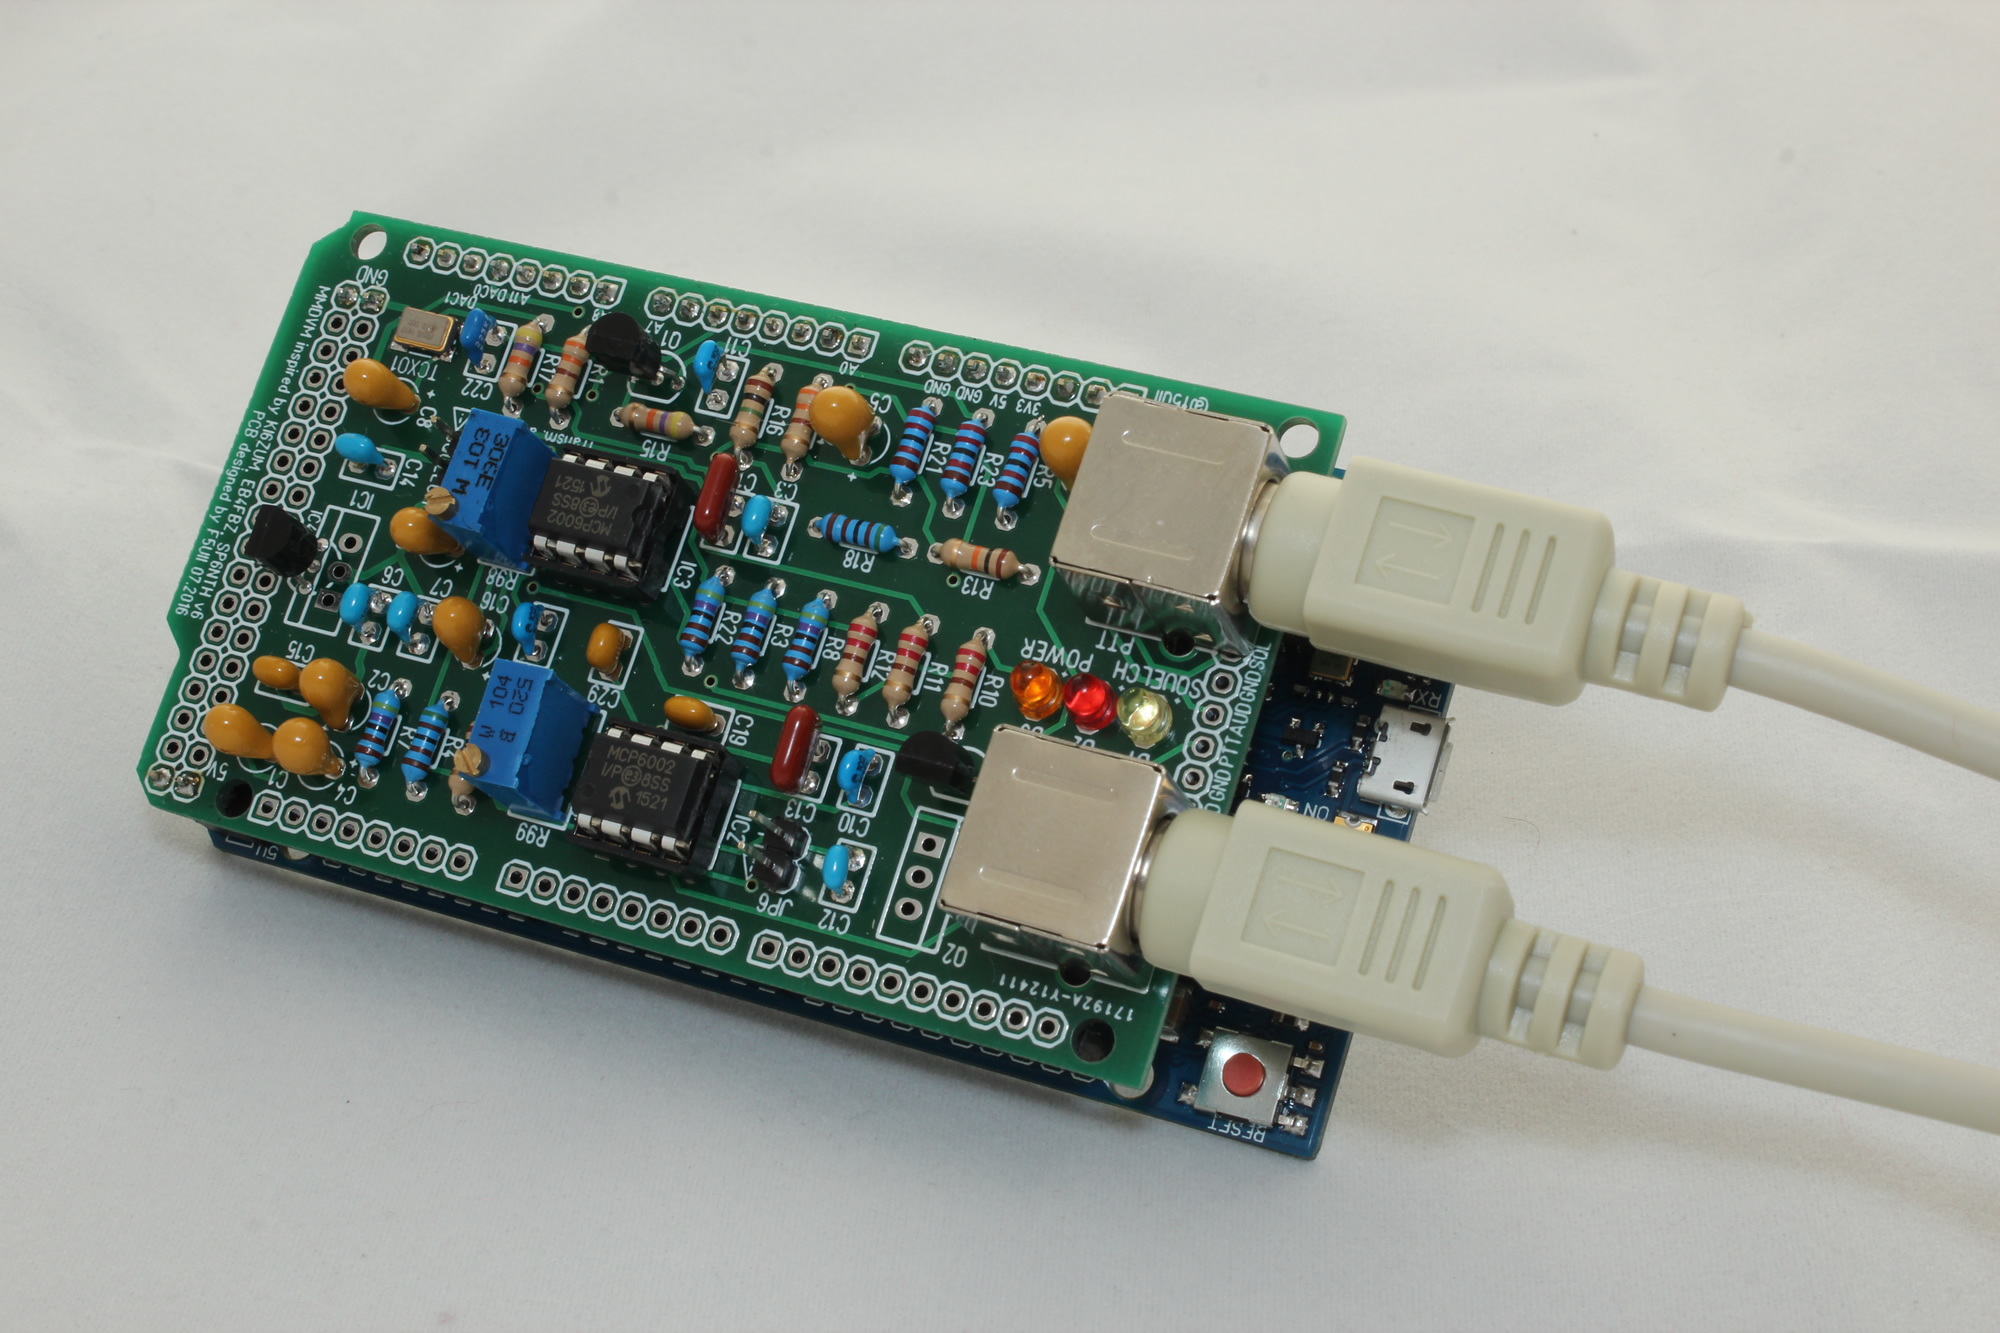 Cable mini Din board MMDVM mmdvm board for arduino due f5uii french hamradio station  at aneh.co